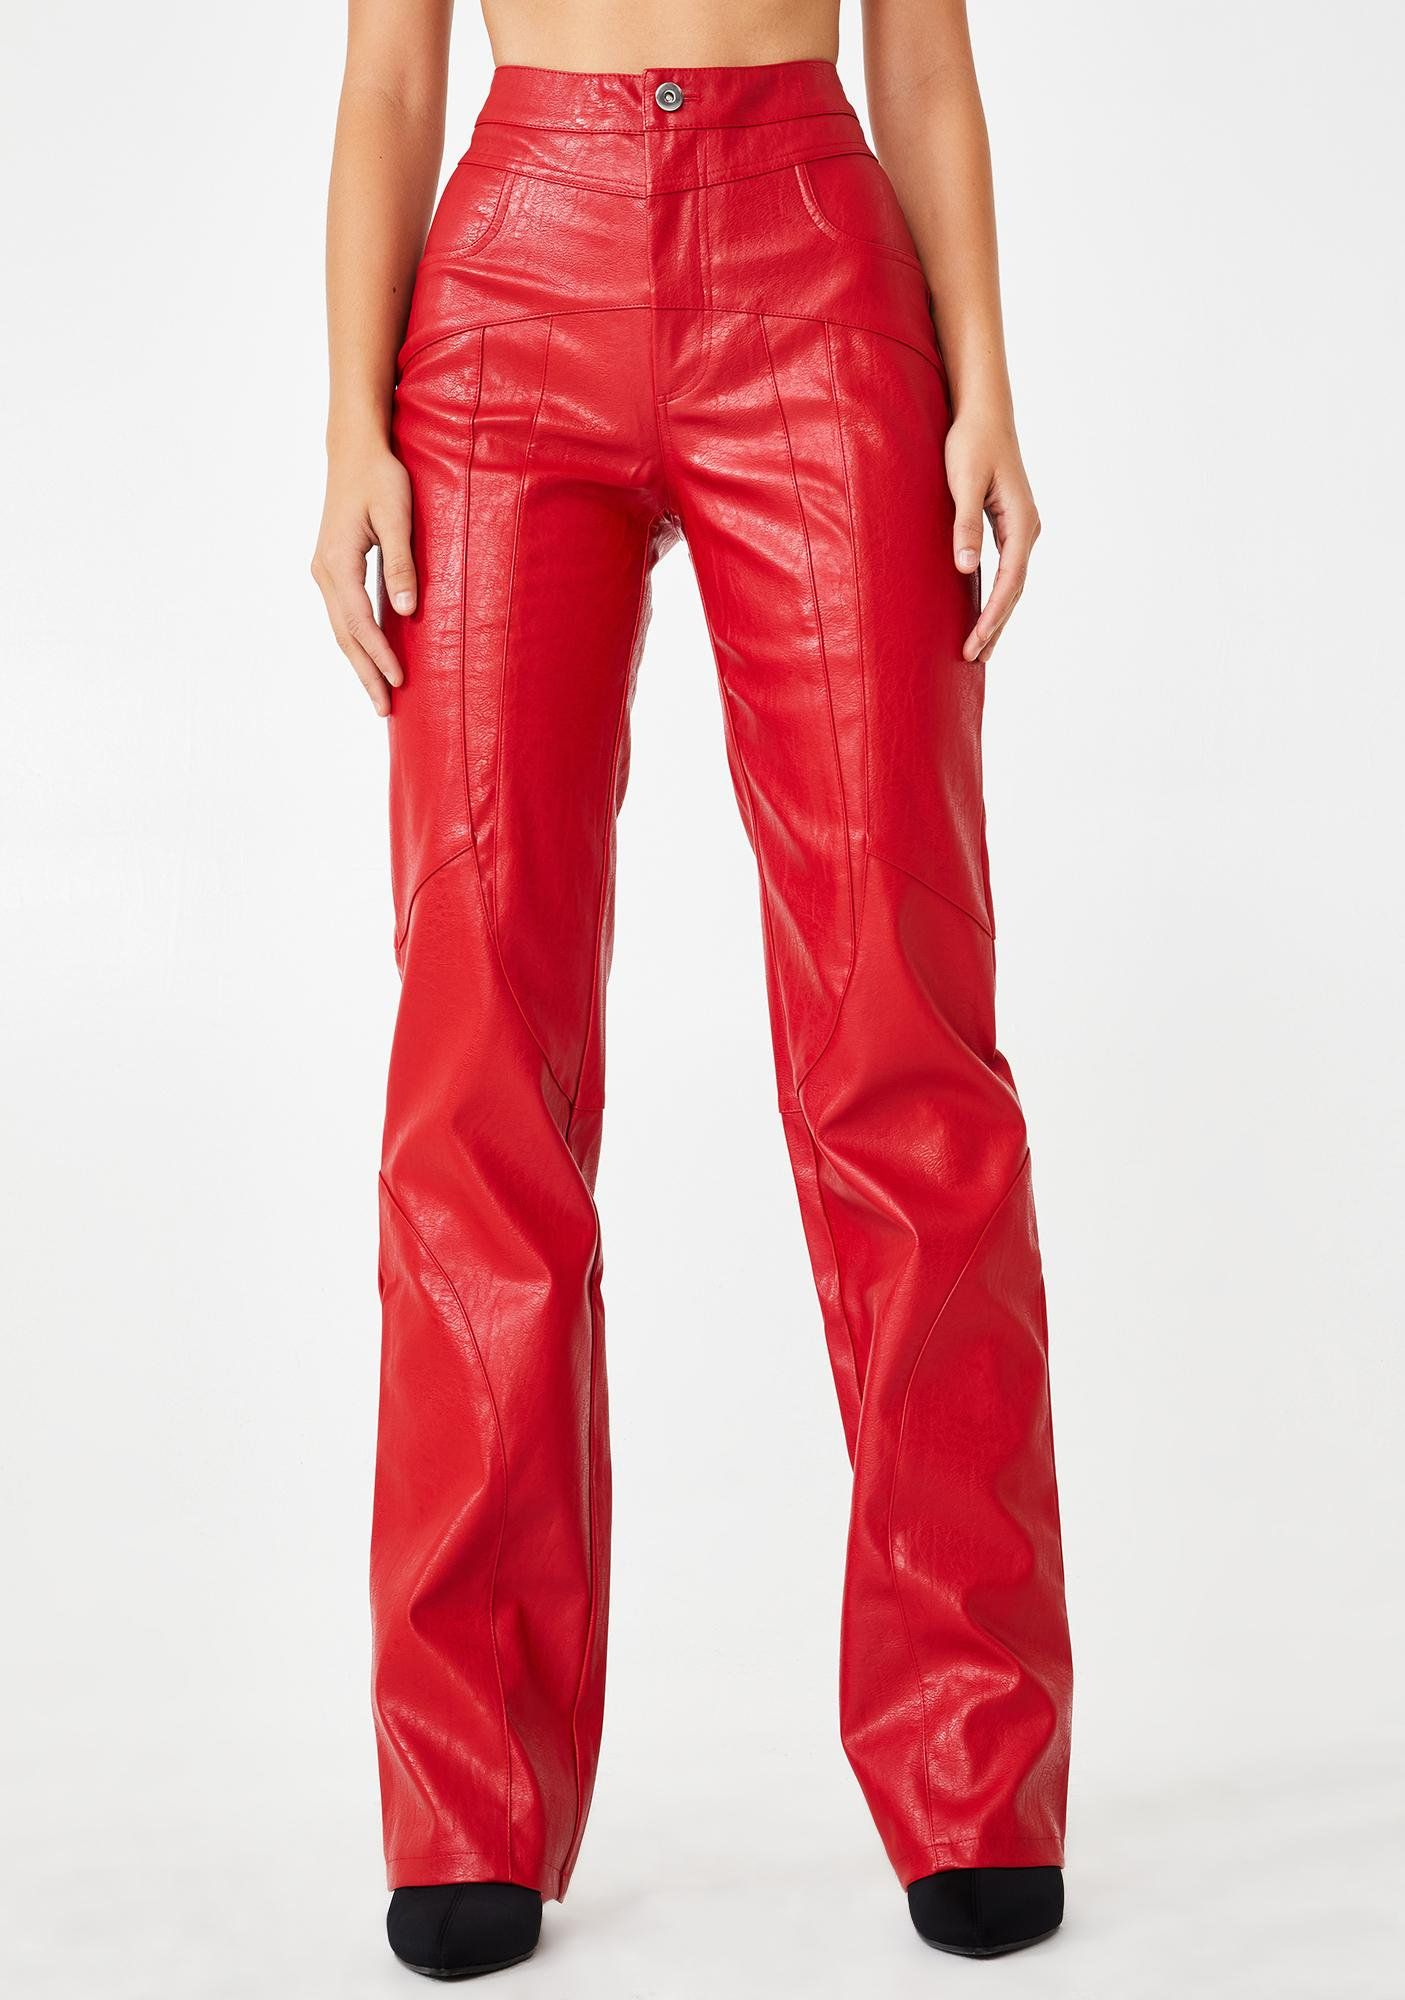 Red York Faux Leather Pants Red leather pants, Leather